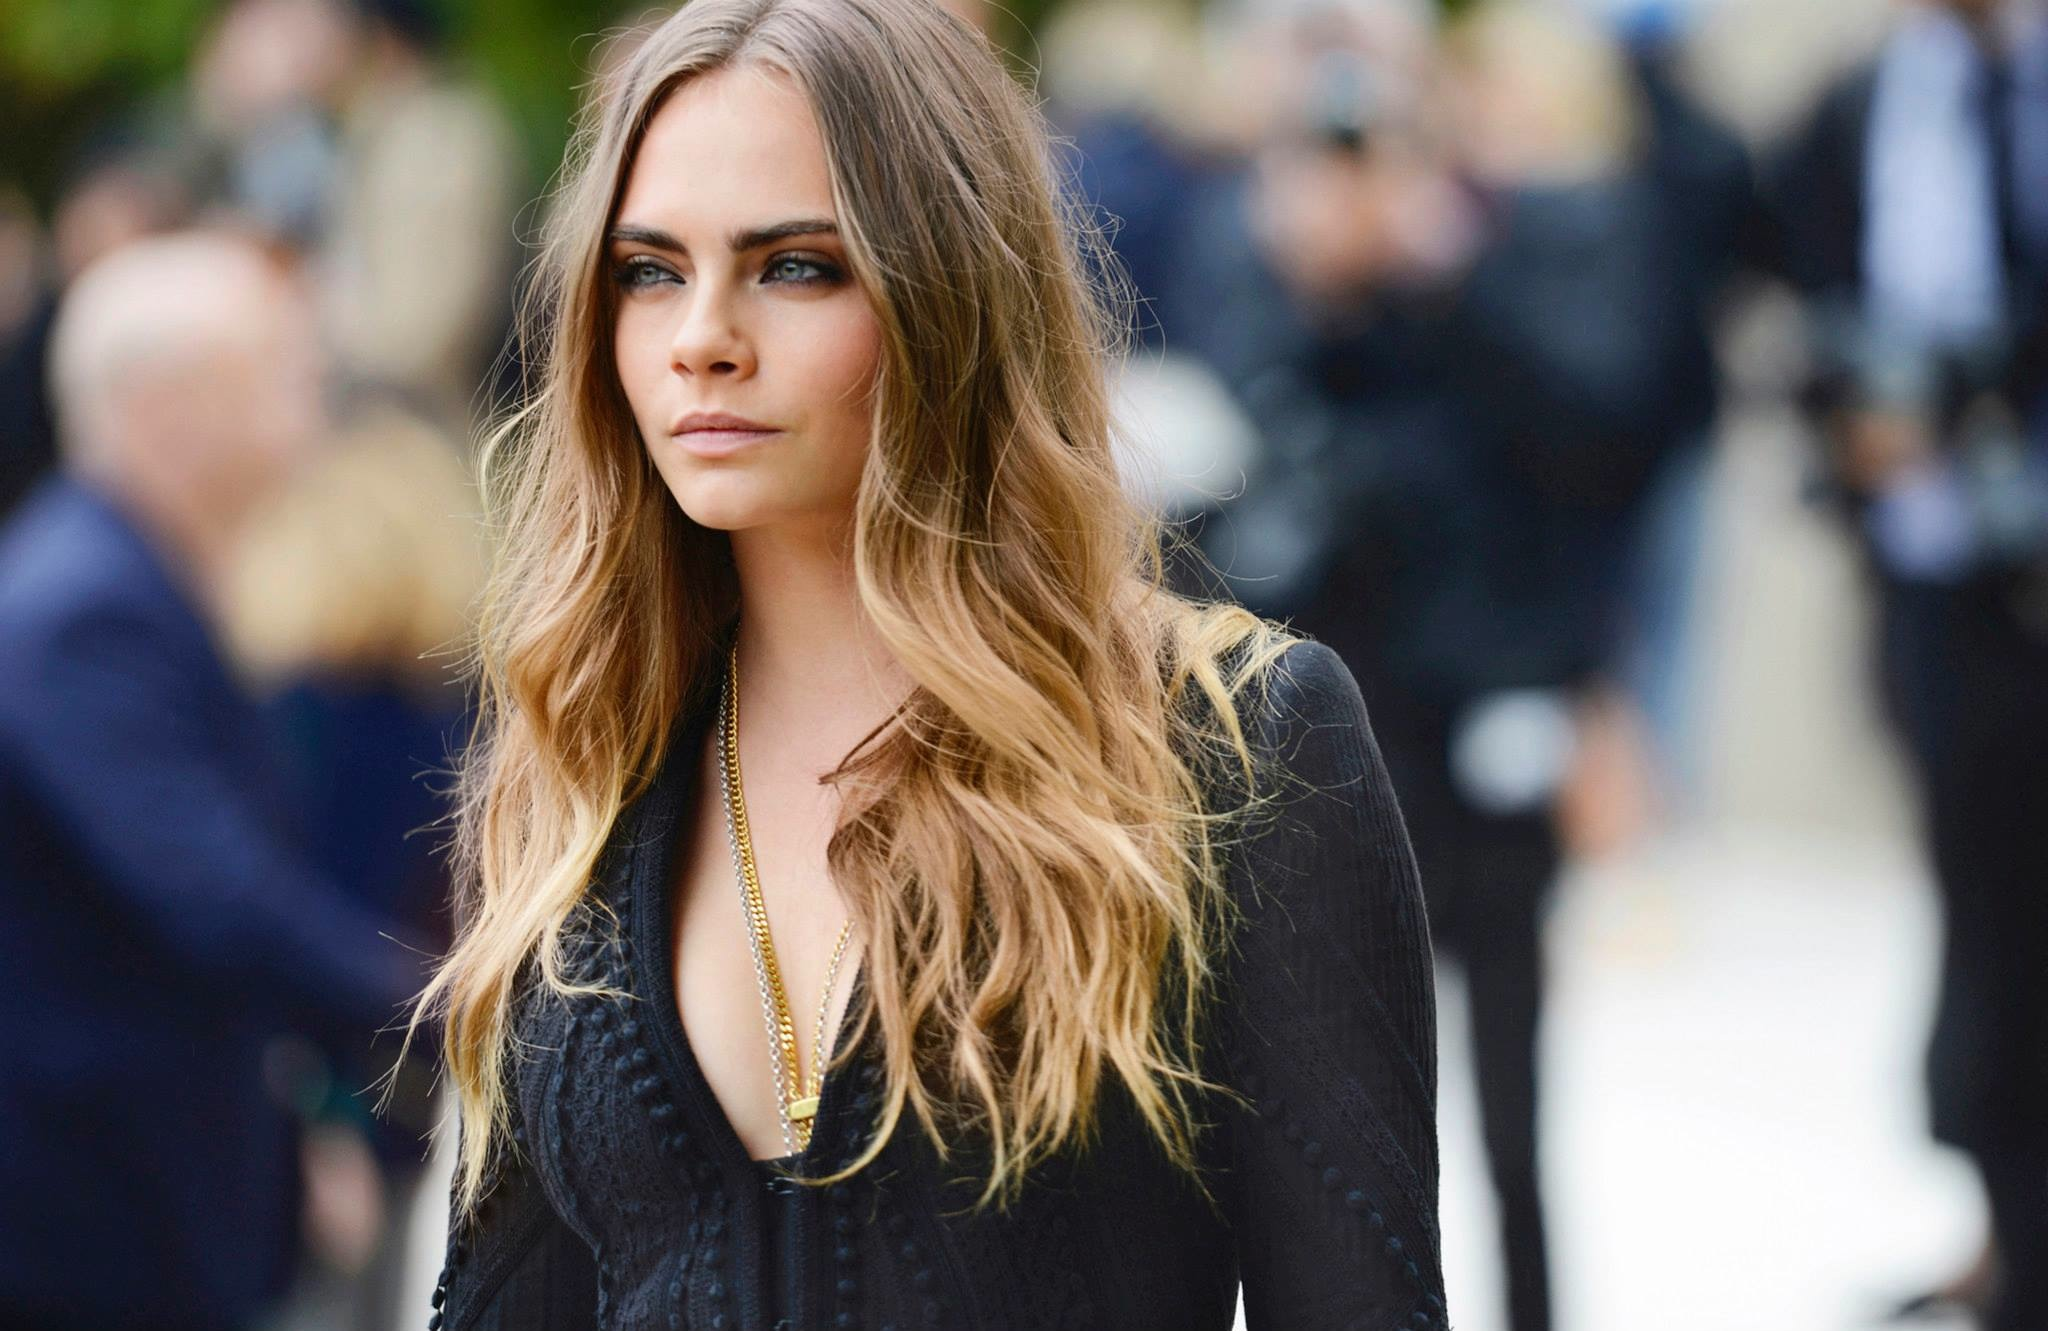 Cara Delevingne at the Burberry Prorsum Spring Summer 2016 Show